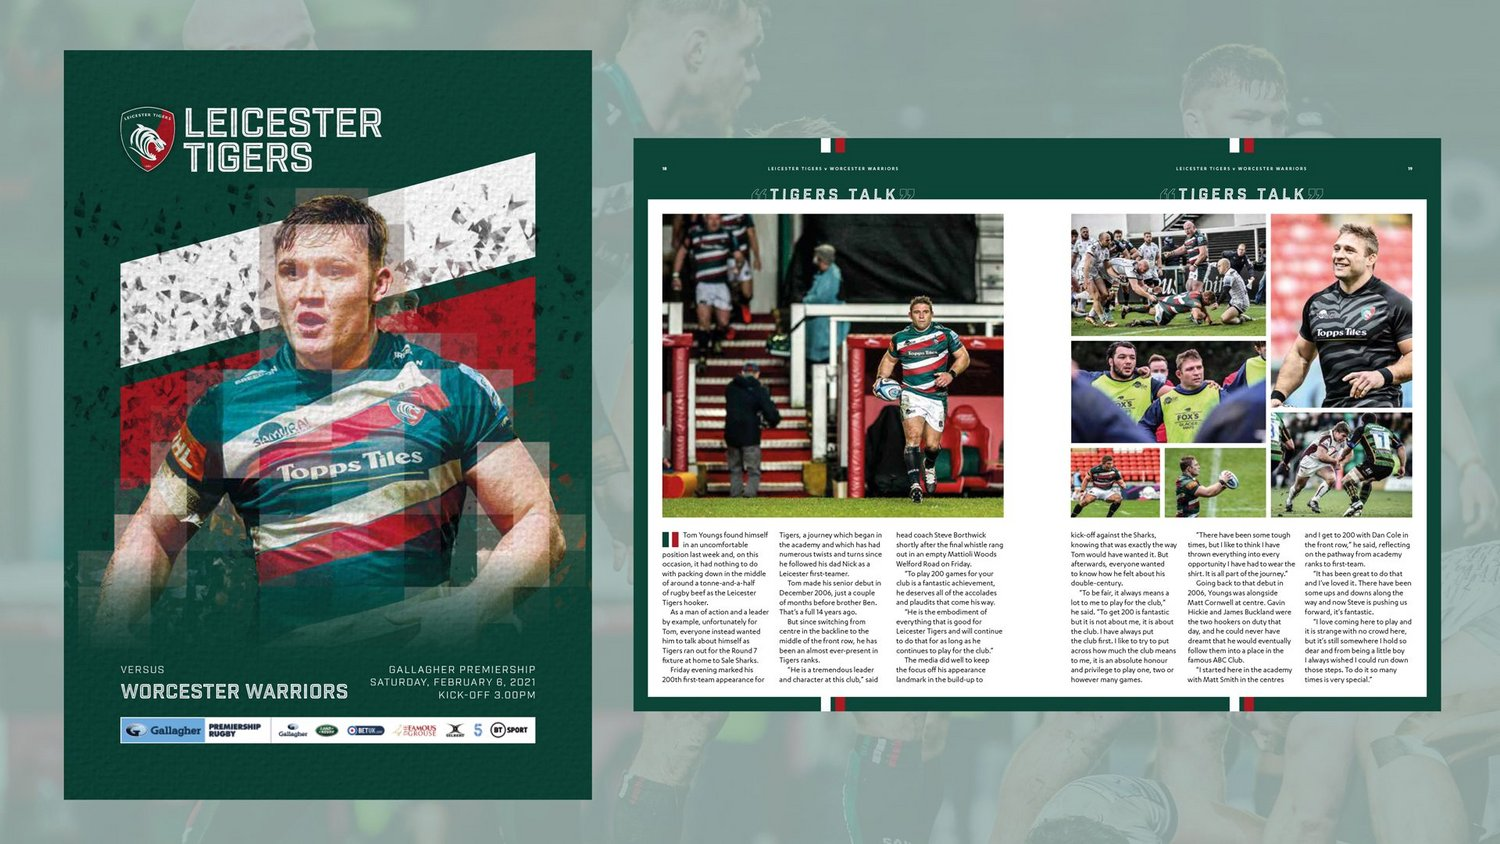 Leicester Tigers v Worcester Warriors 2020-21 - Digital Matchday Programme